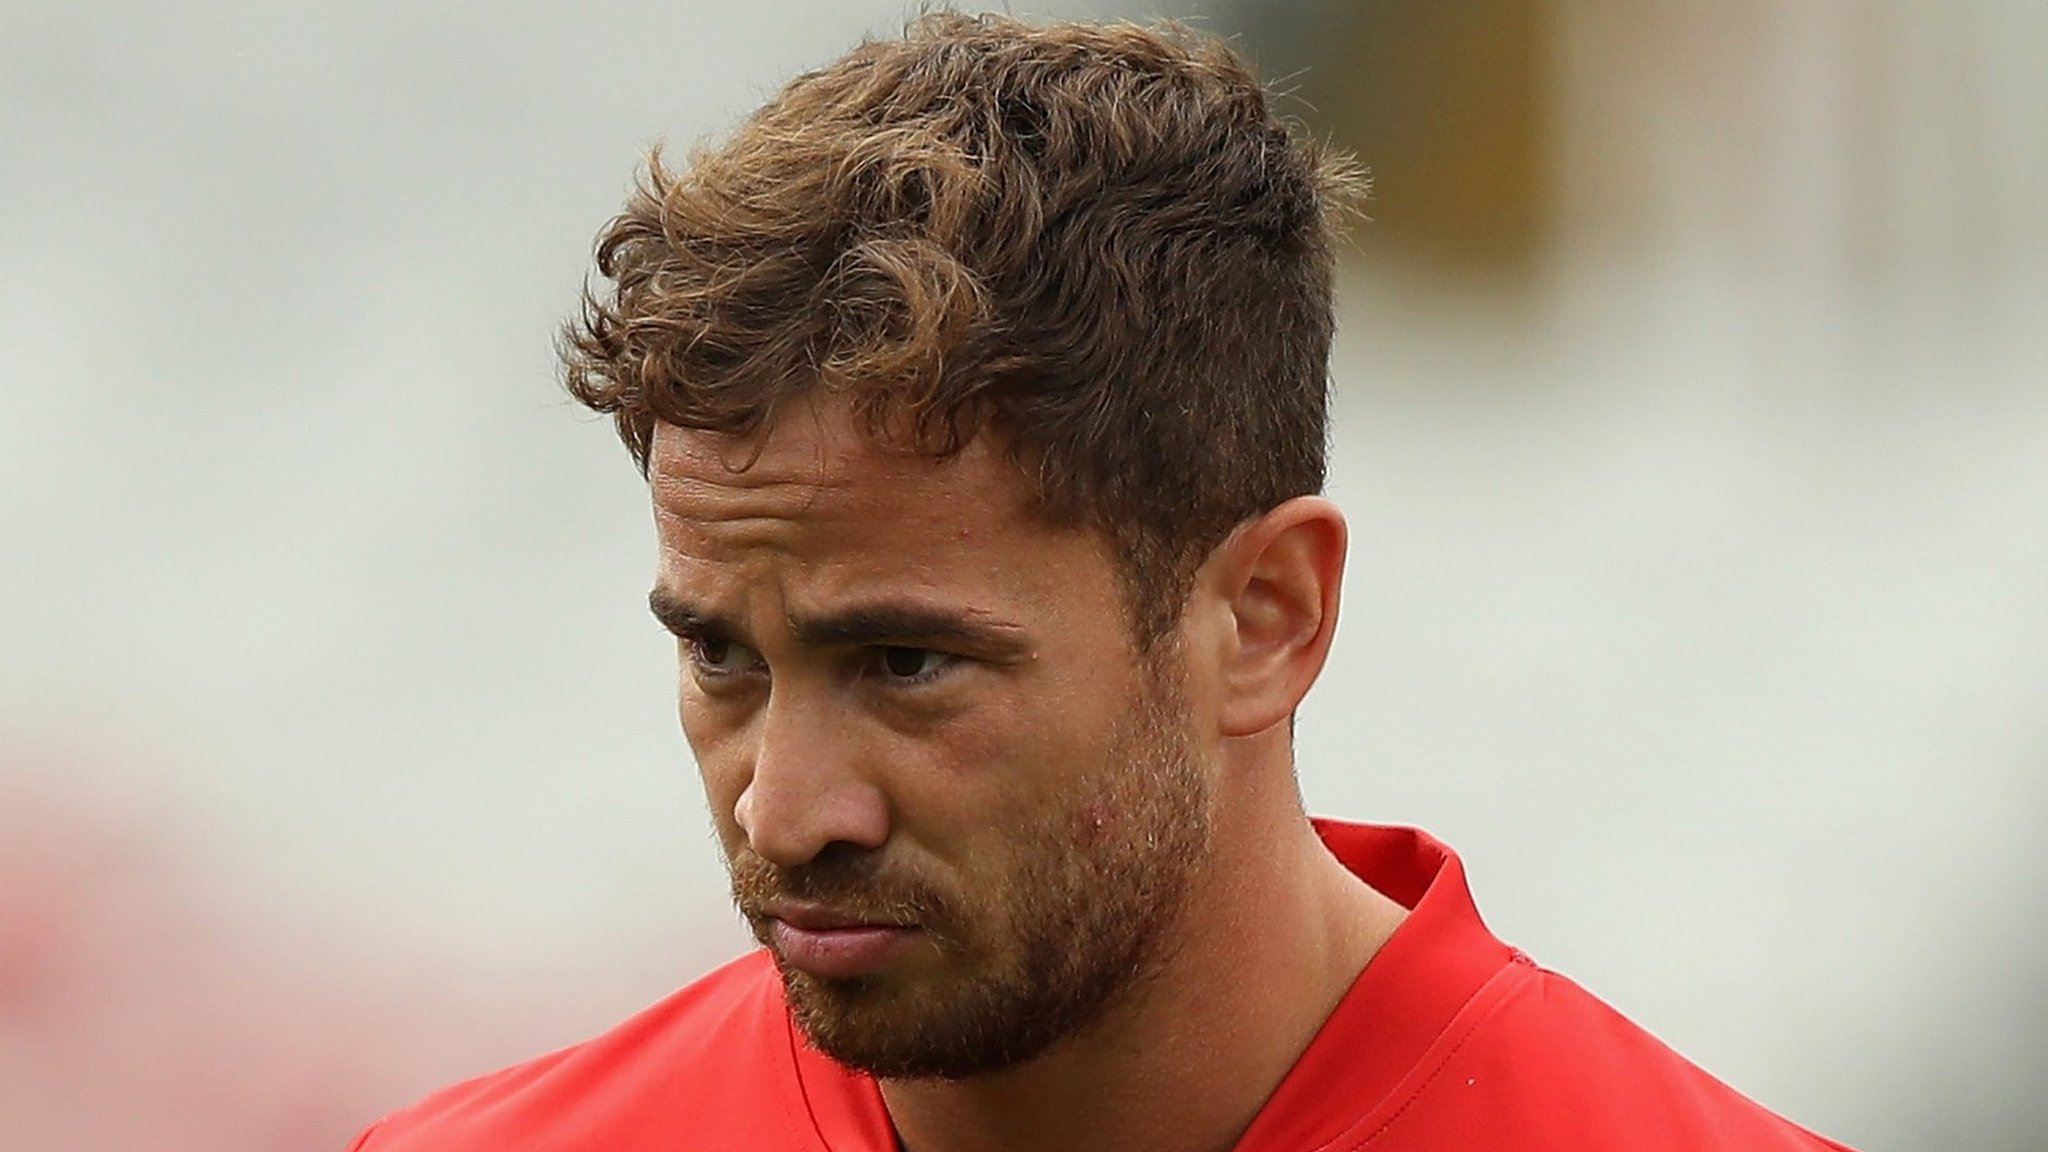 Cipriani fined £2,000 by Gloucester over nightclub incident